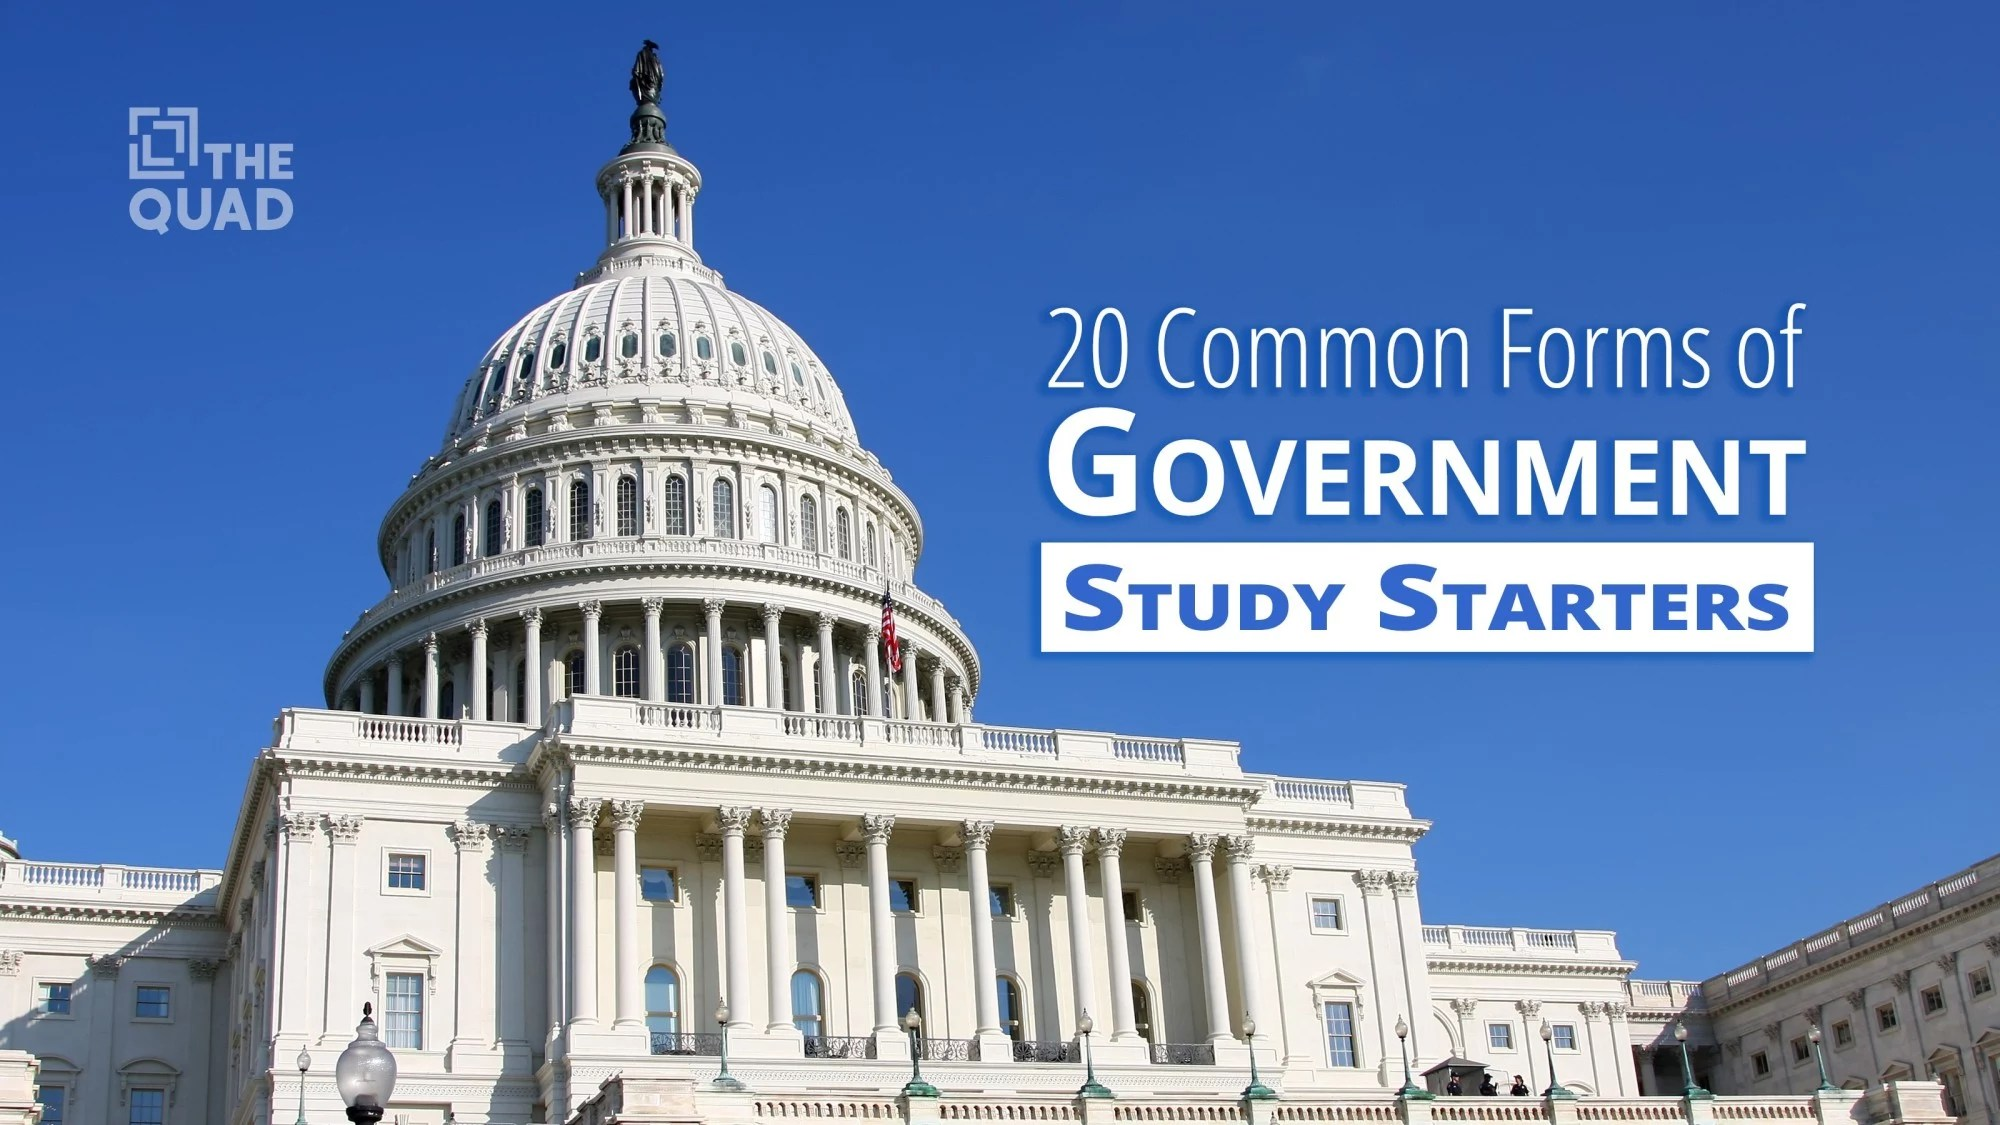 20 Common Forms Of Government Study Starters